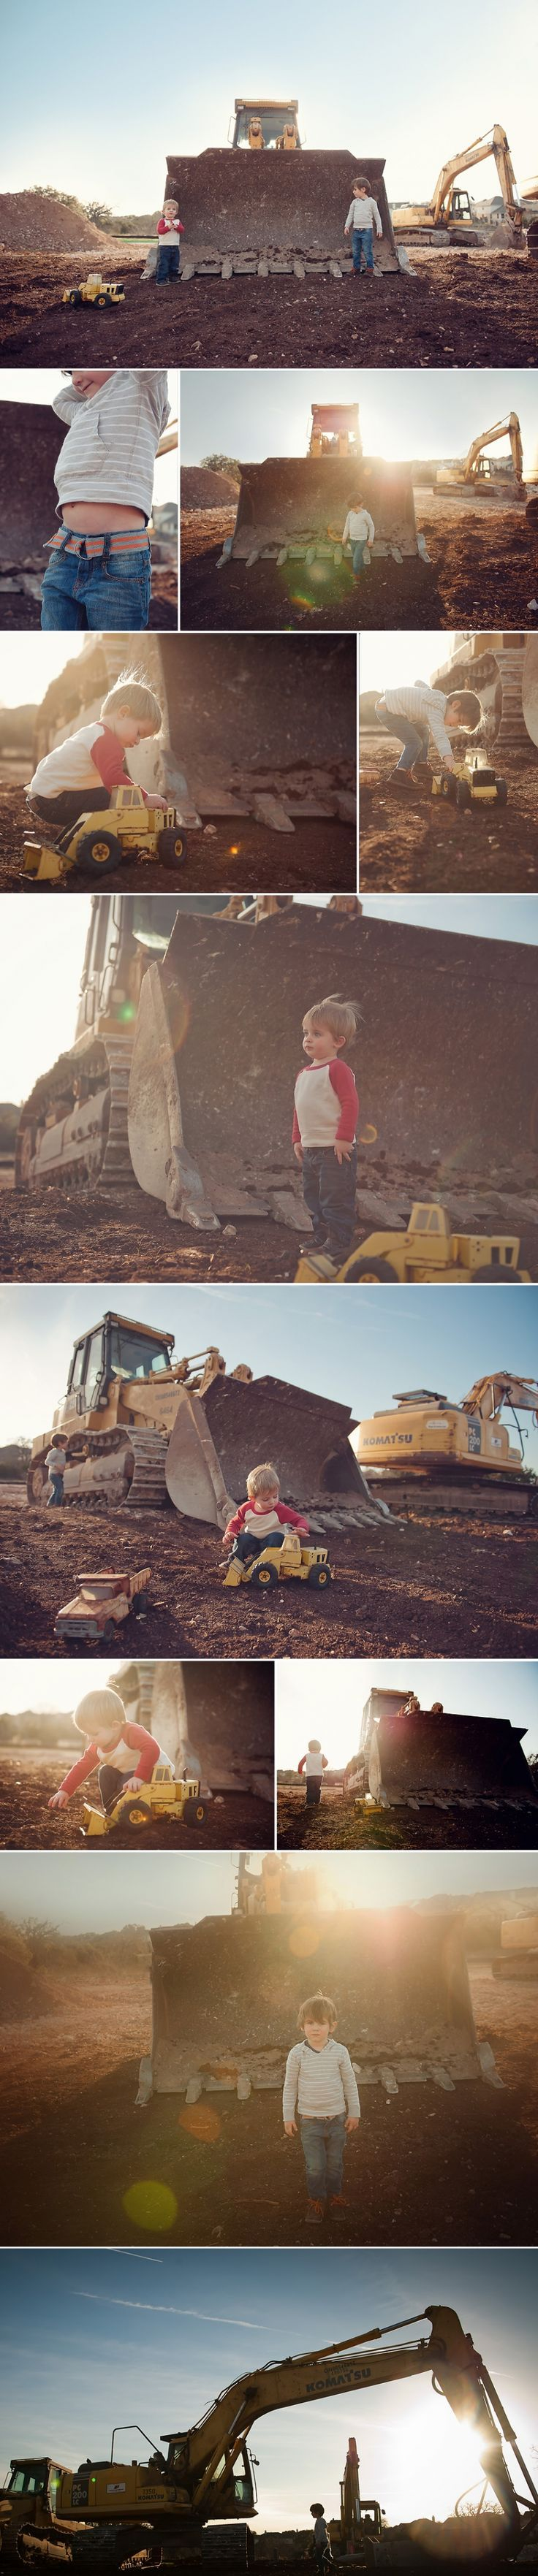 I am planning to do a shoot like this and will need two small children with their own little construction equipment..